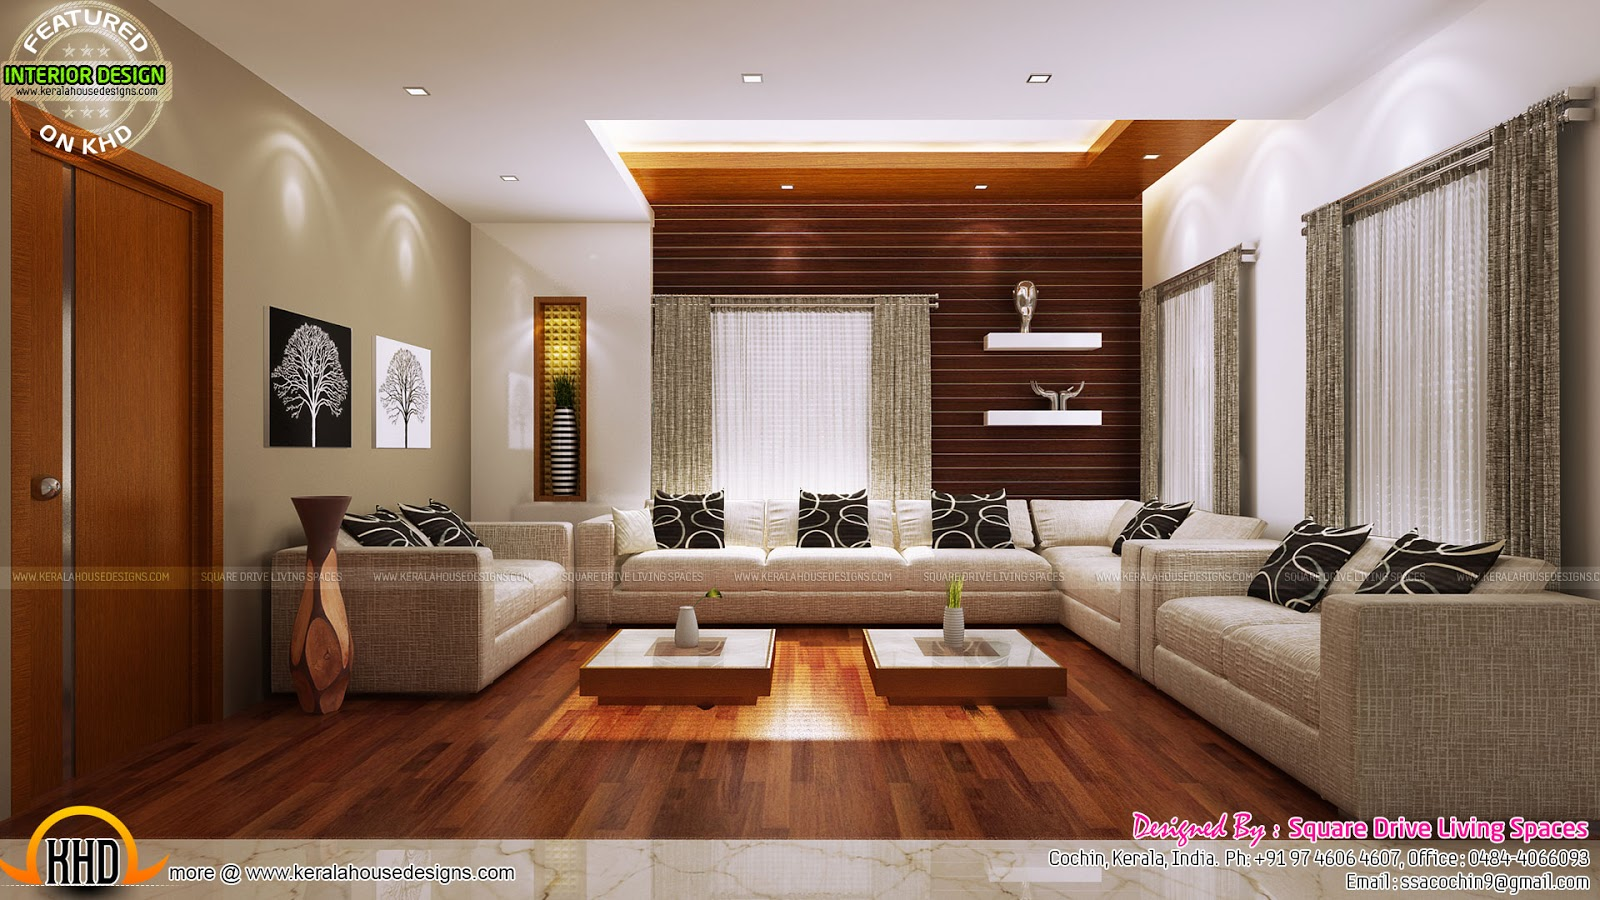 Excellent kerala interior design kerala home design and for House plans interior photos